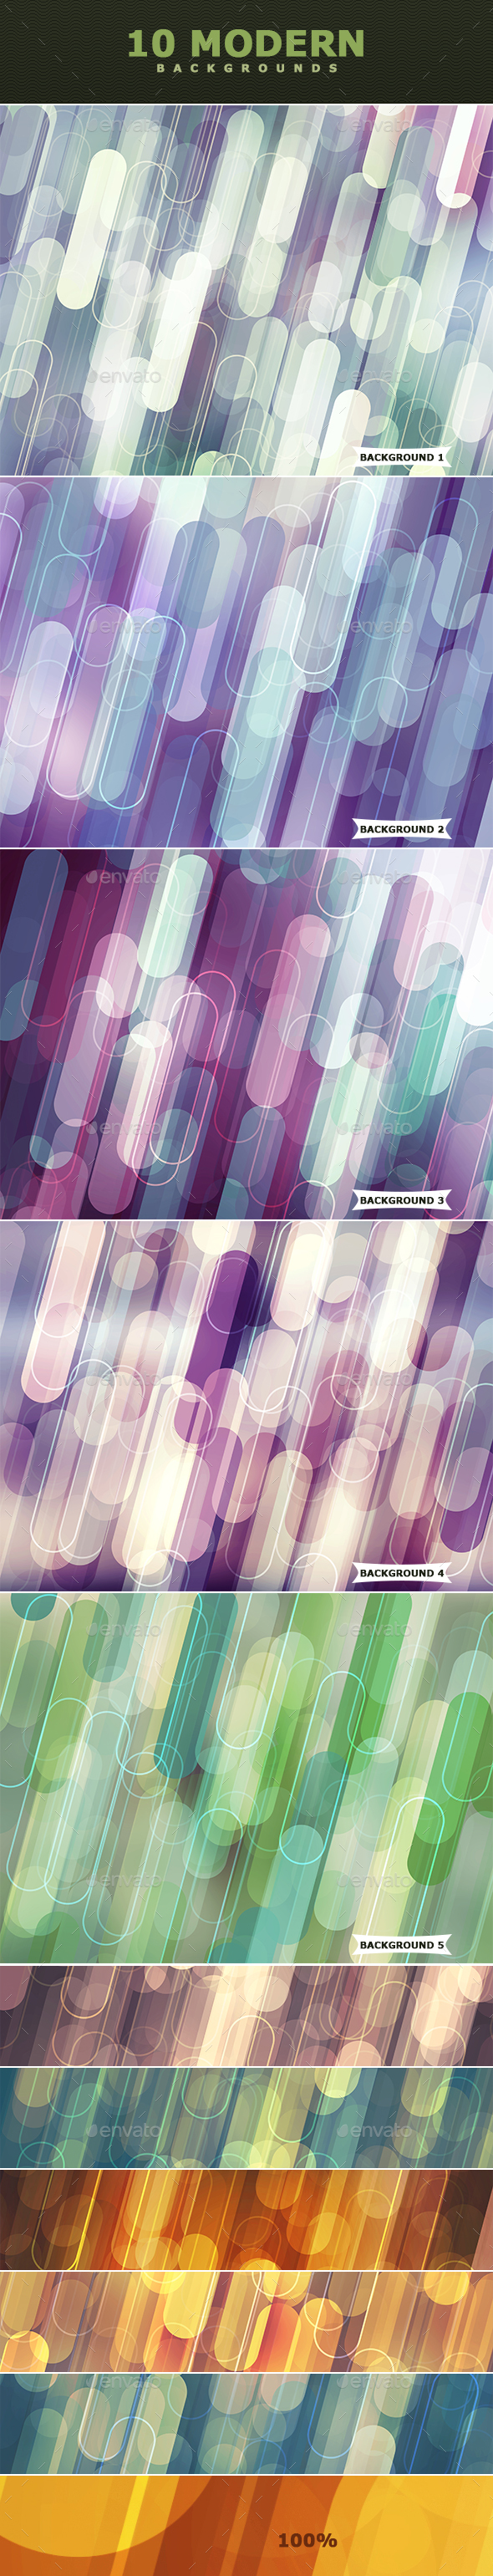 Modern Photoshop Backgrounds - Abstract Backgrounds